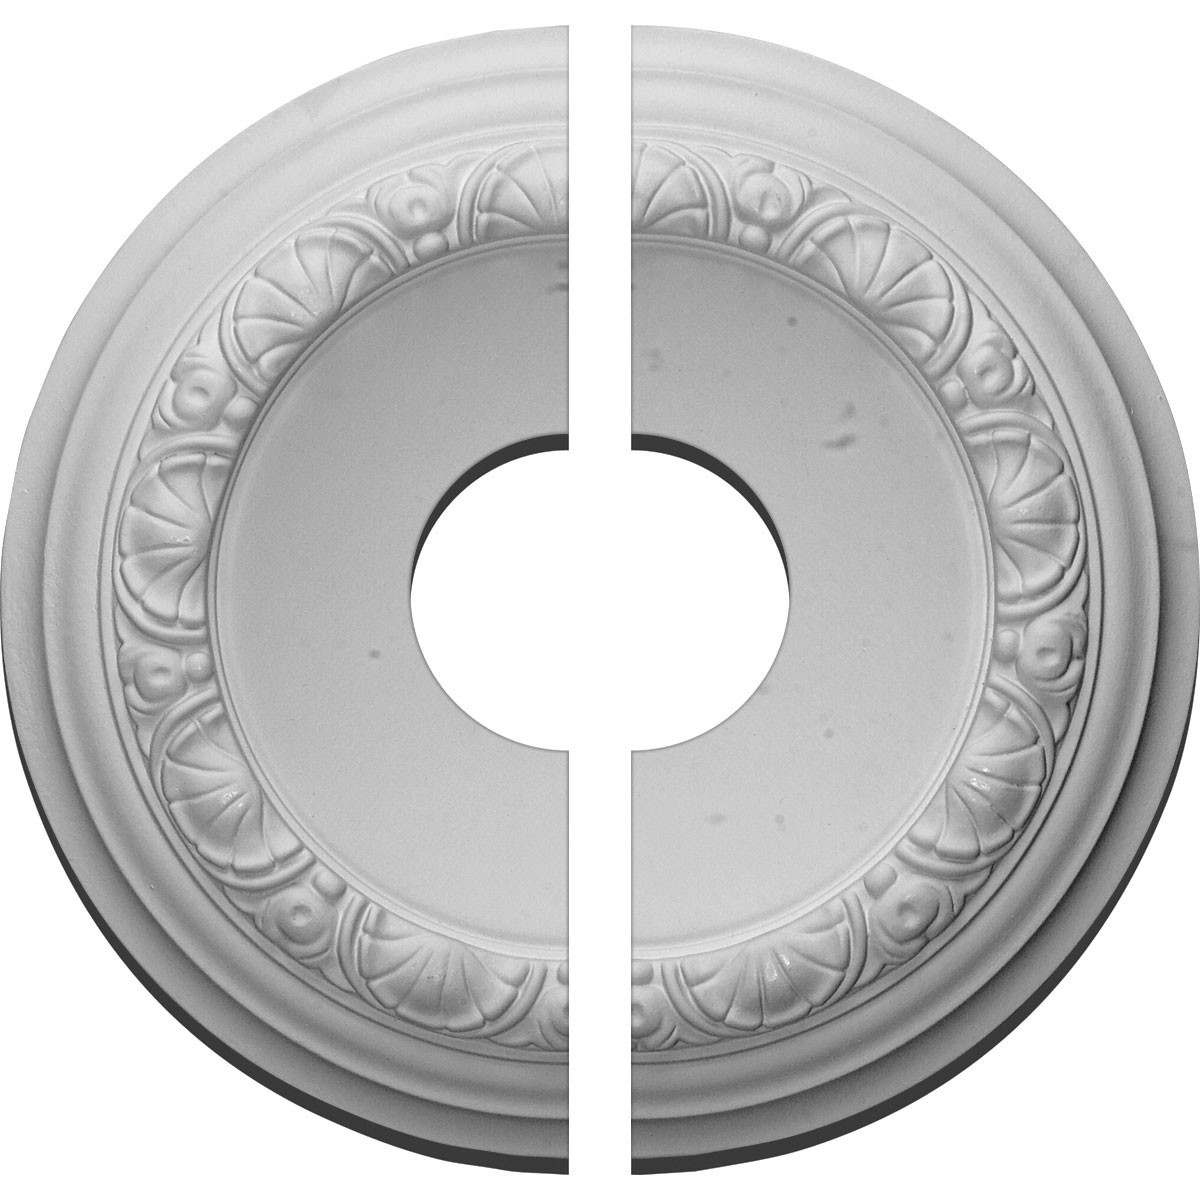 """EM-CM12CA2-03500 - 12 1/2""""OD x 3 1/2""""ID x 1 1/2""""P Carlsbad Ceiling Medallion, Two Piece (Fits Canopies up to 7 7/8"""")"""